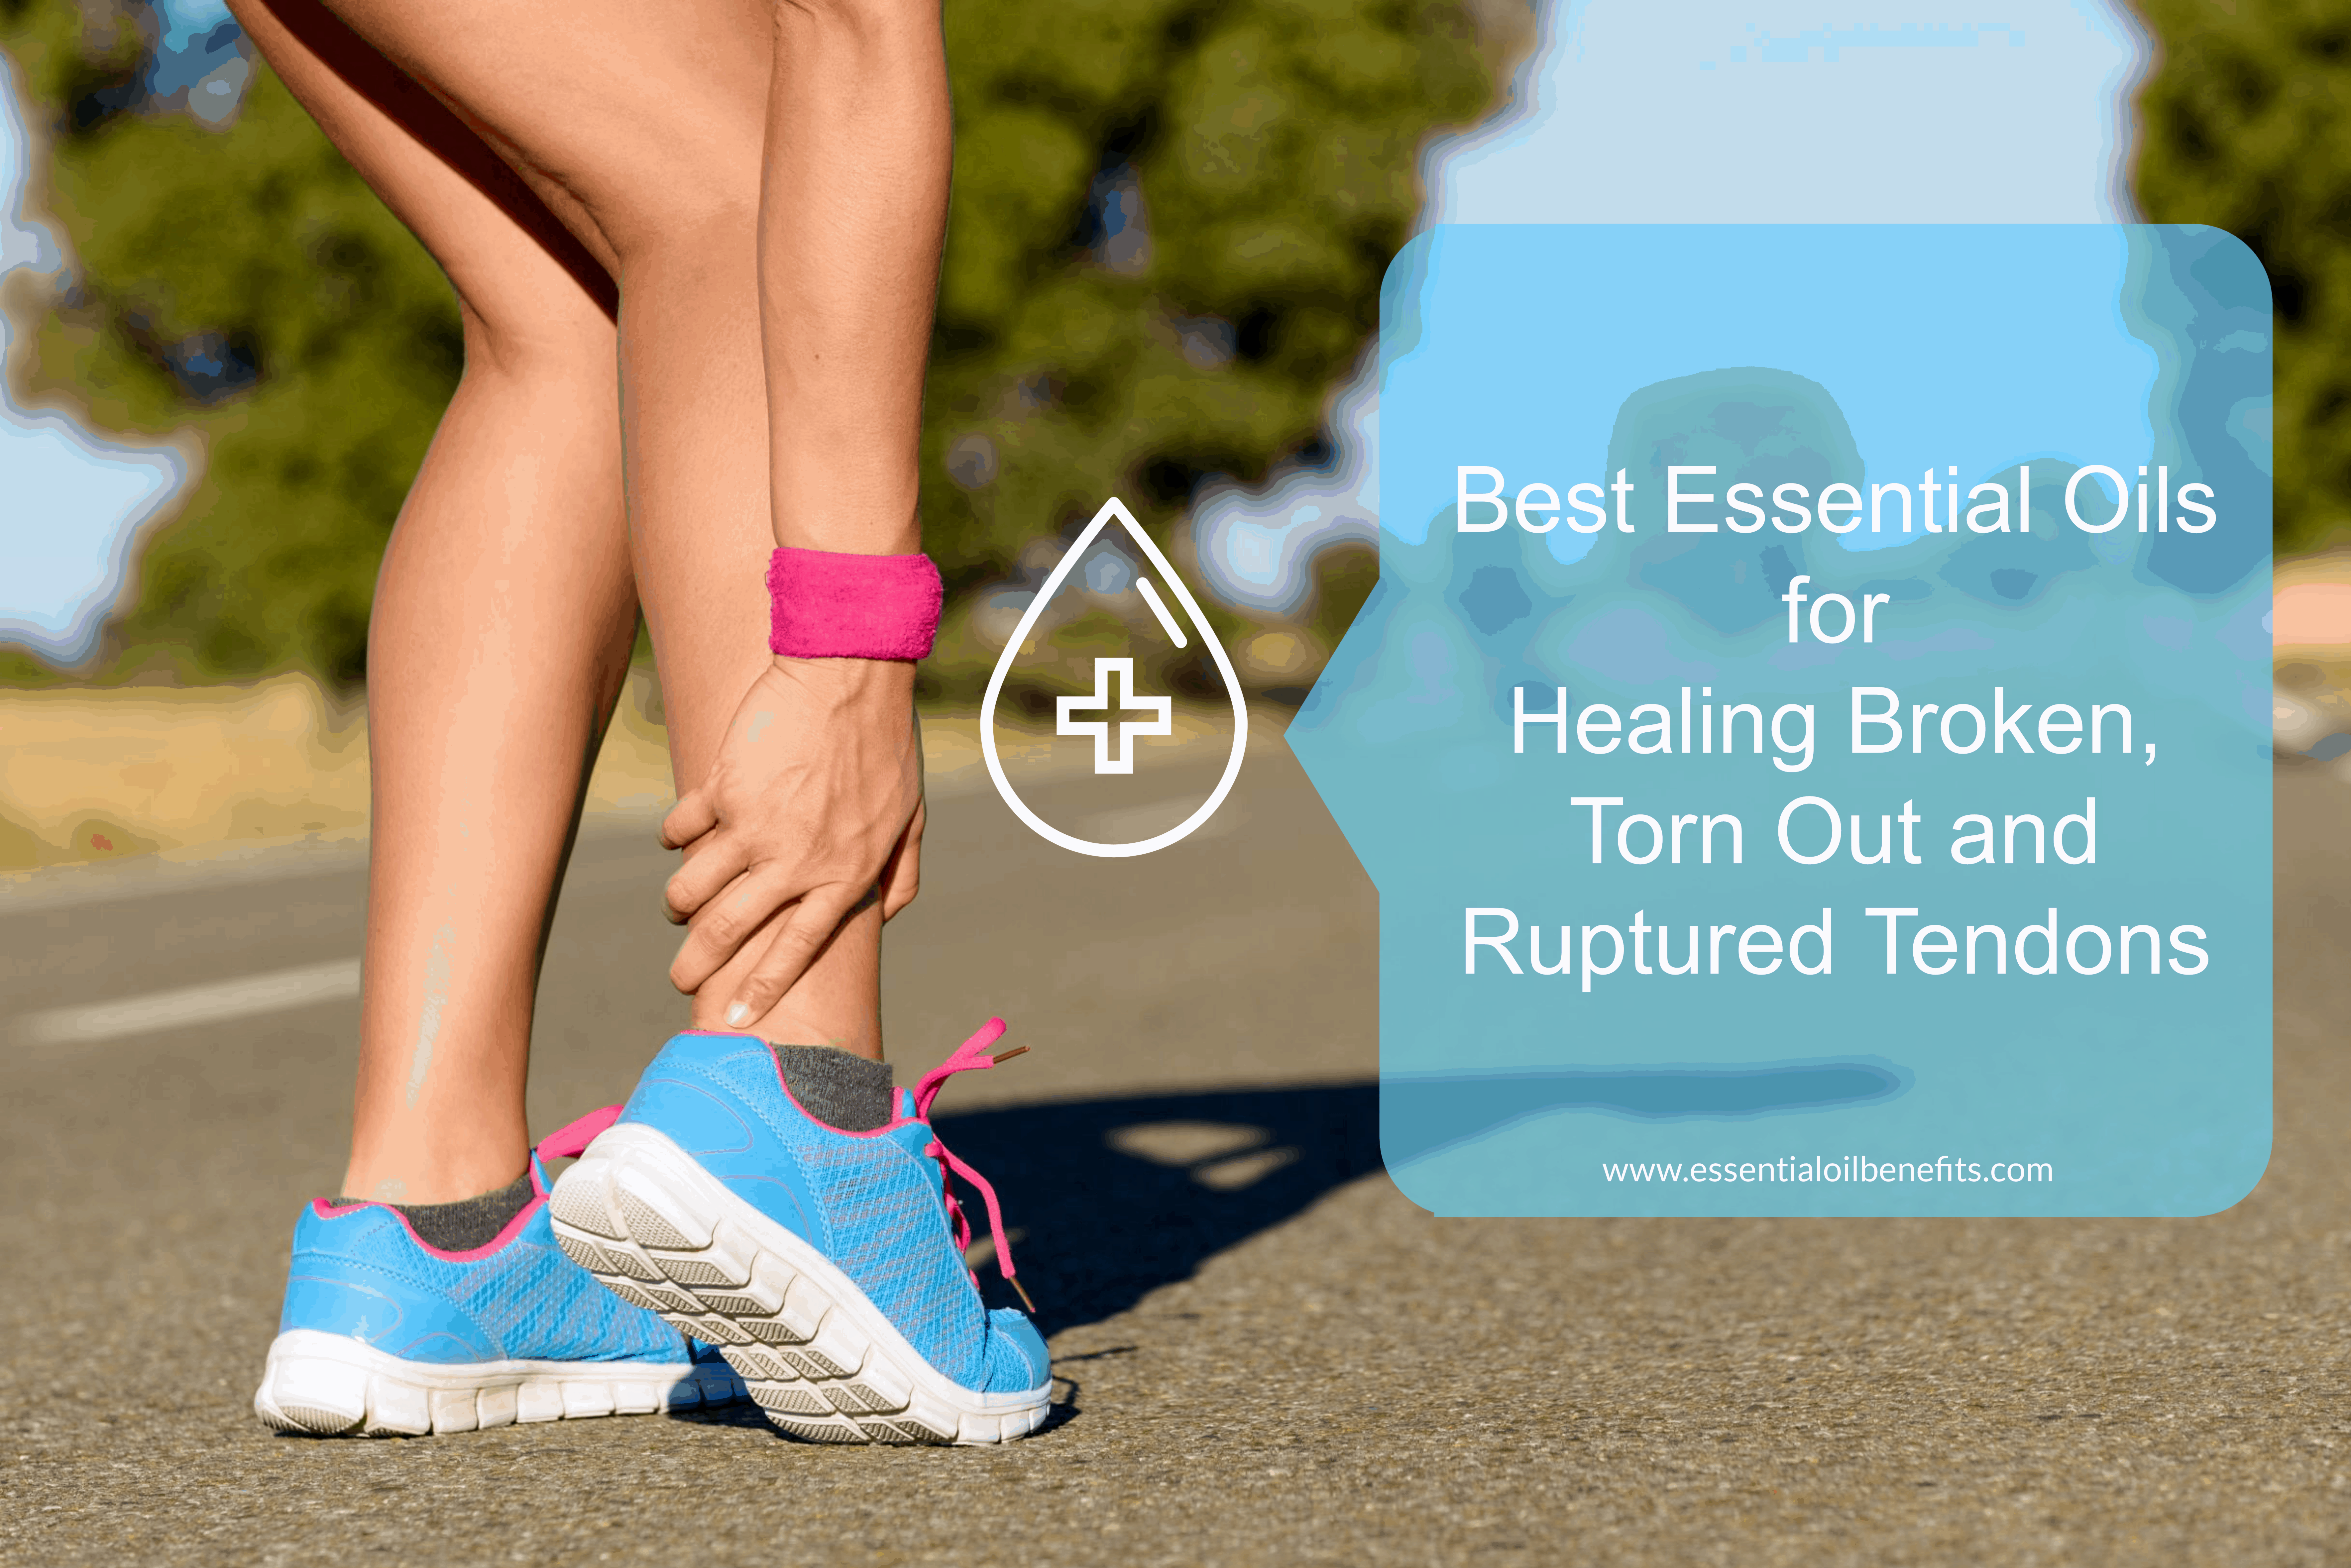 What Are the Best Essential Oils And Recipes For Healing Broken